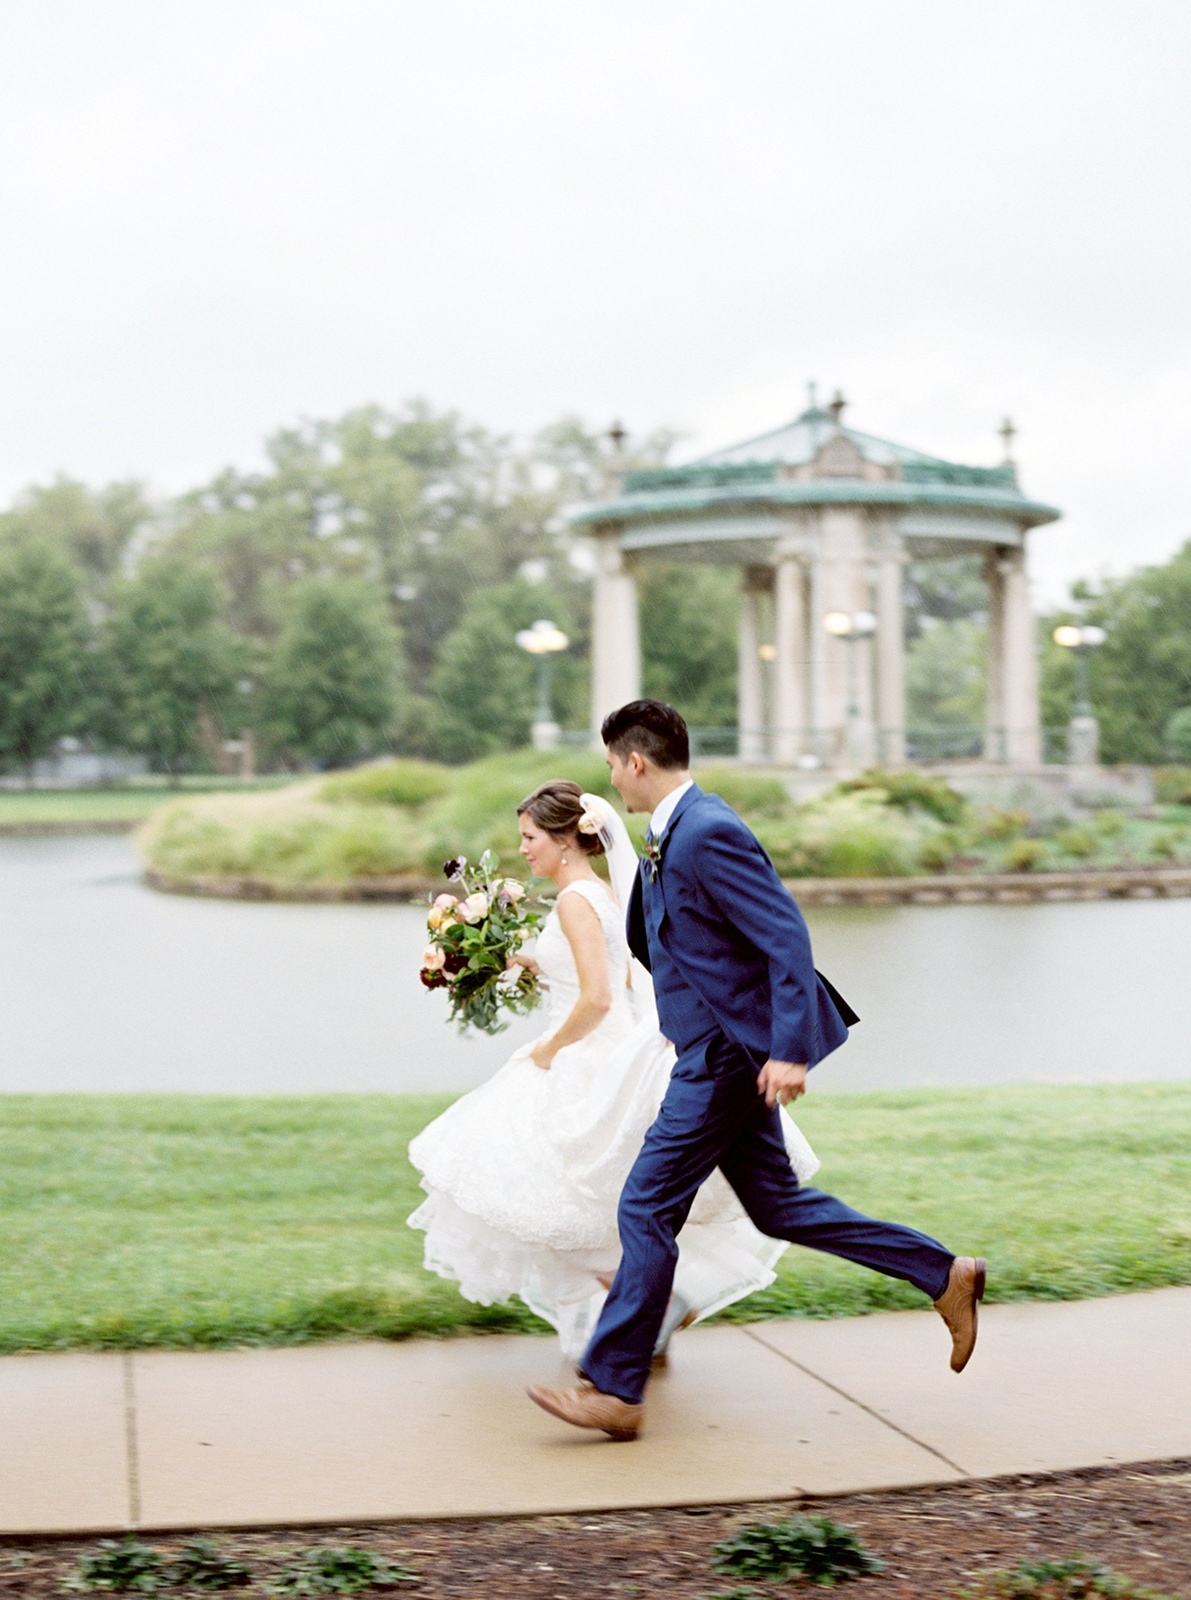 The Muny, St. Louis wedding photographer, Midwest Wedding photographer, fine art wedding photographer, birmingham wedding photographer, film wedding photographer, alabama wedding photographer, rainy wedding day, photojournalistic wedding photography, lifestyle wedding photos,